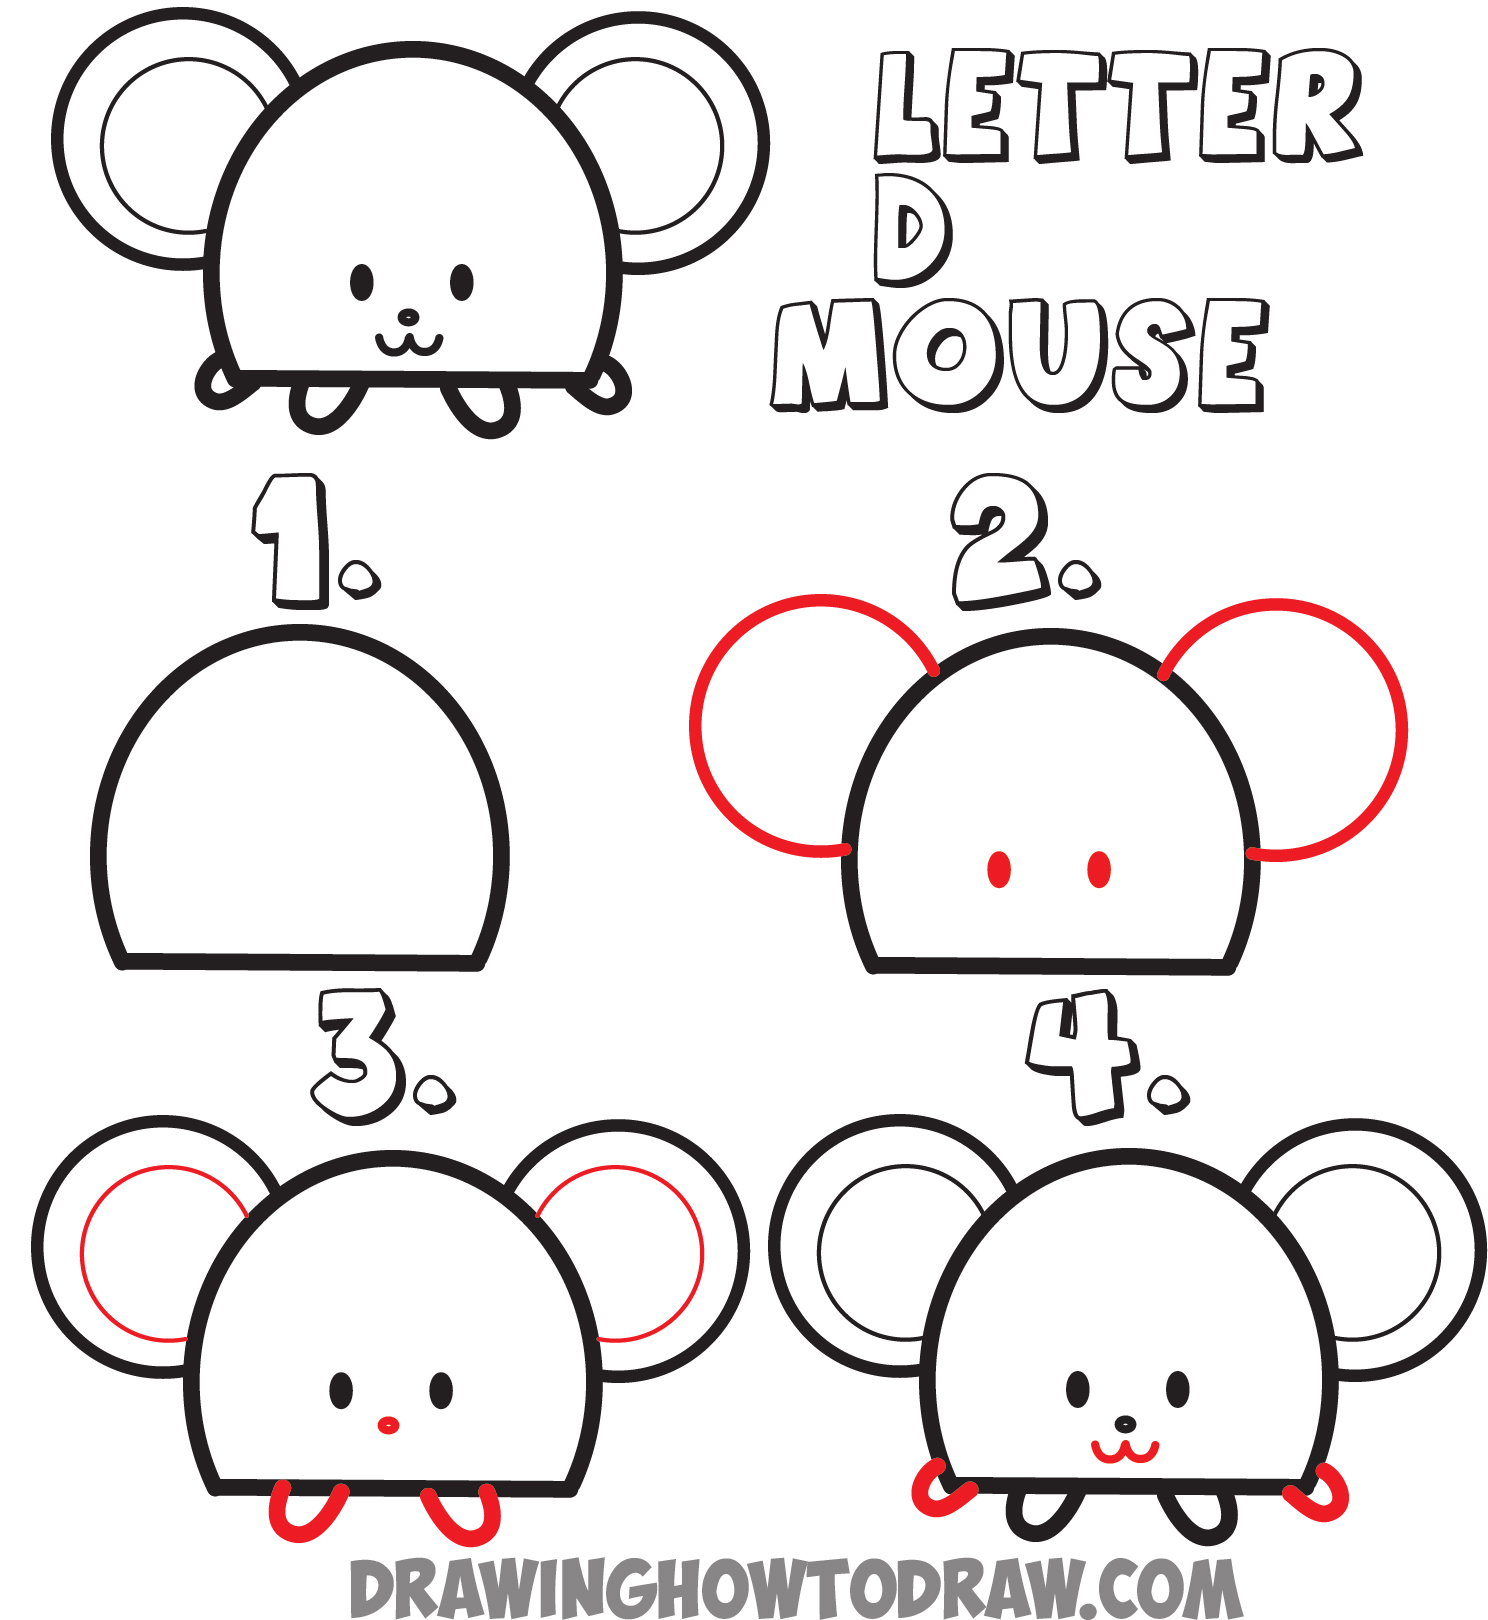 huge guide to drawing cartoon animals from the uppercase